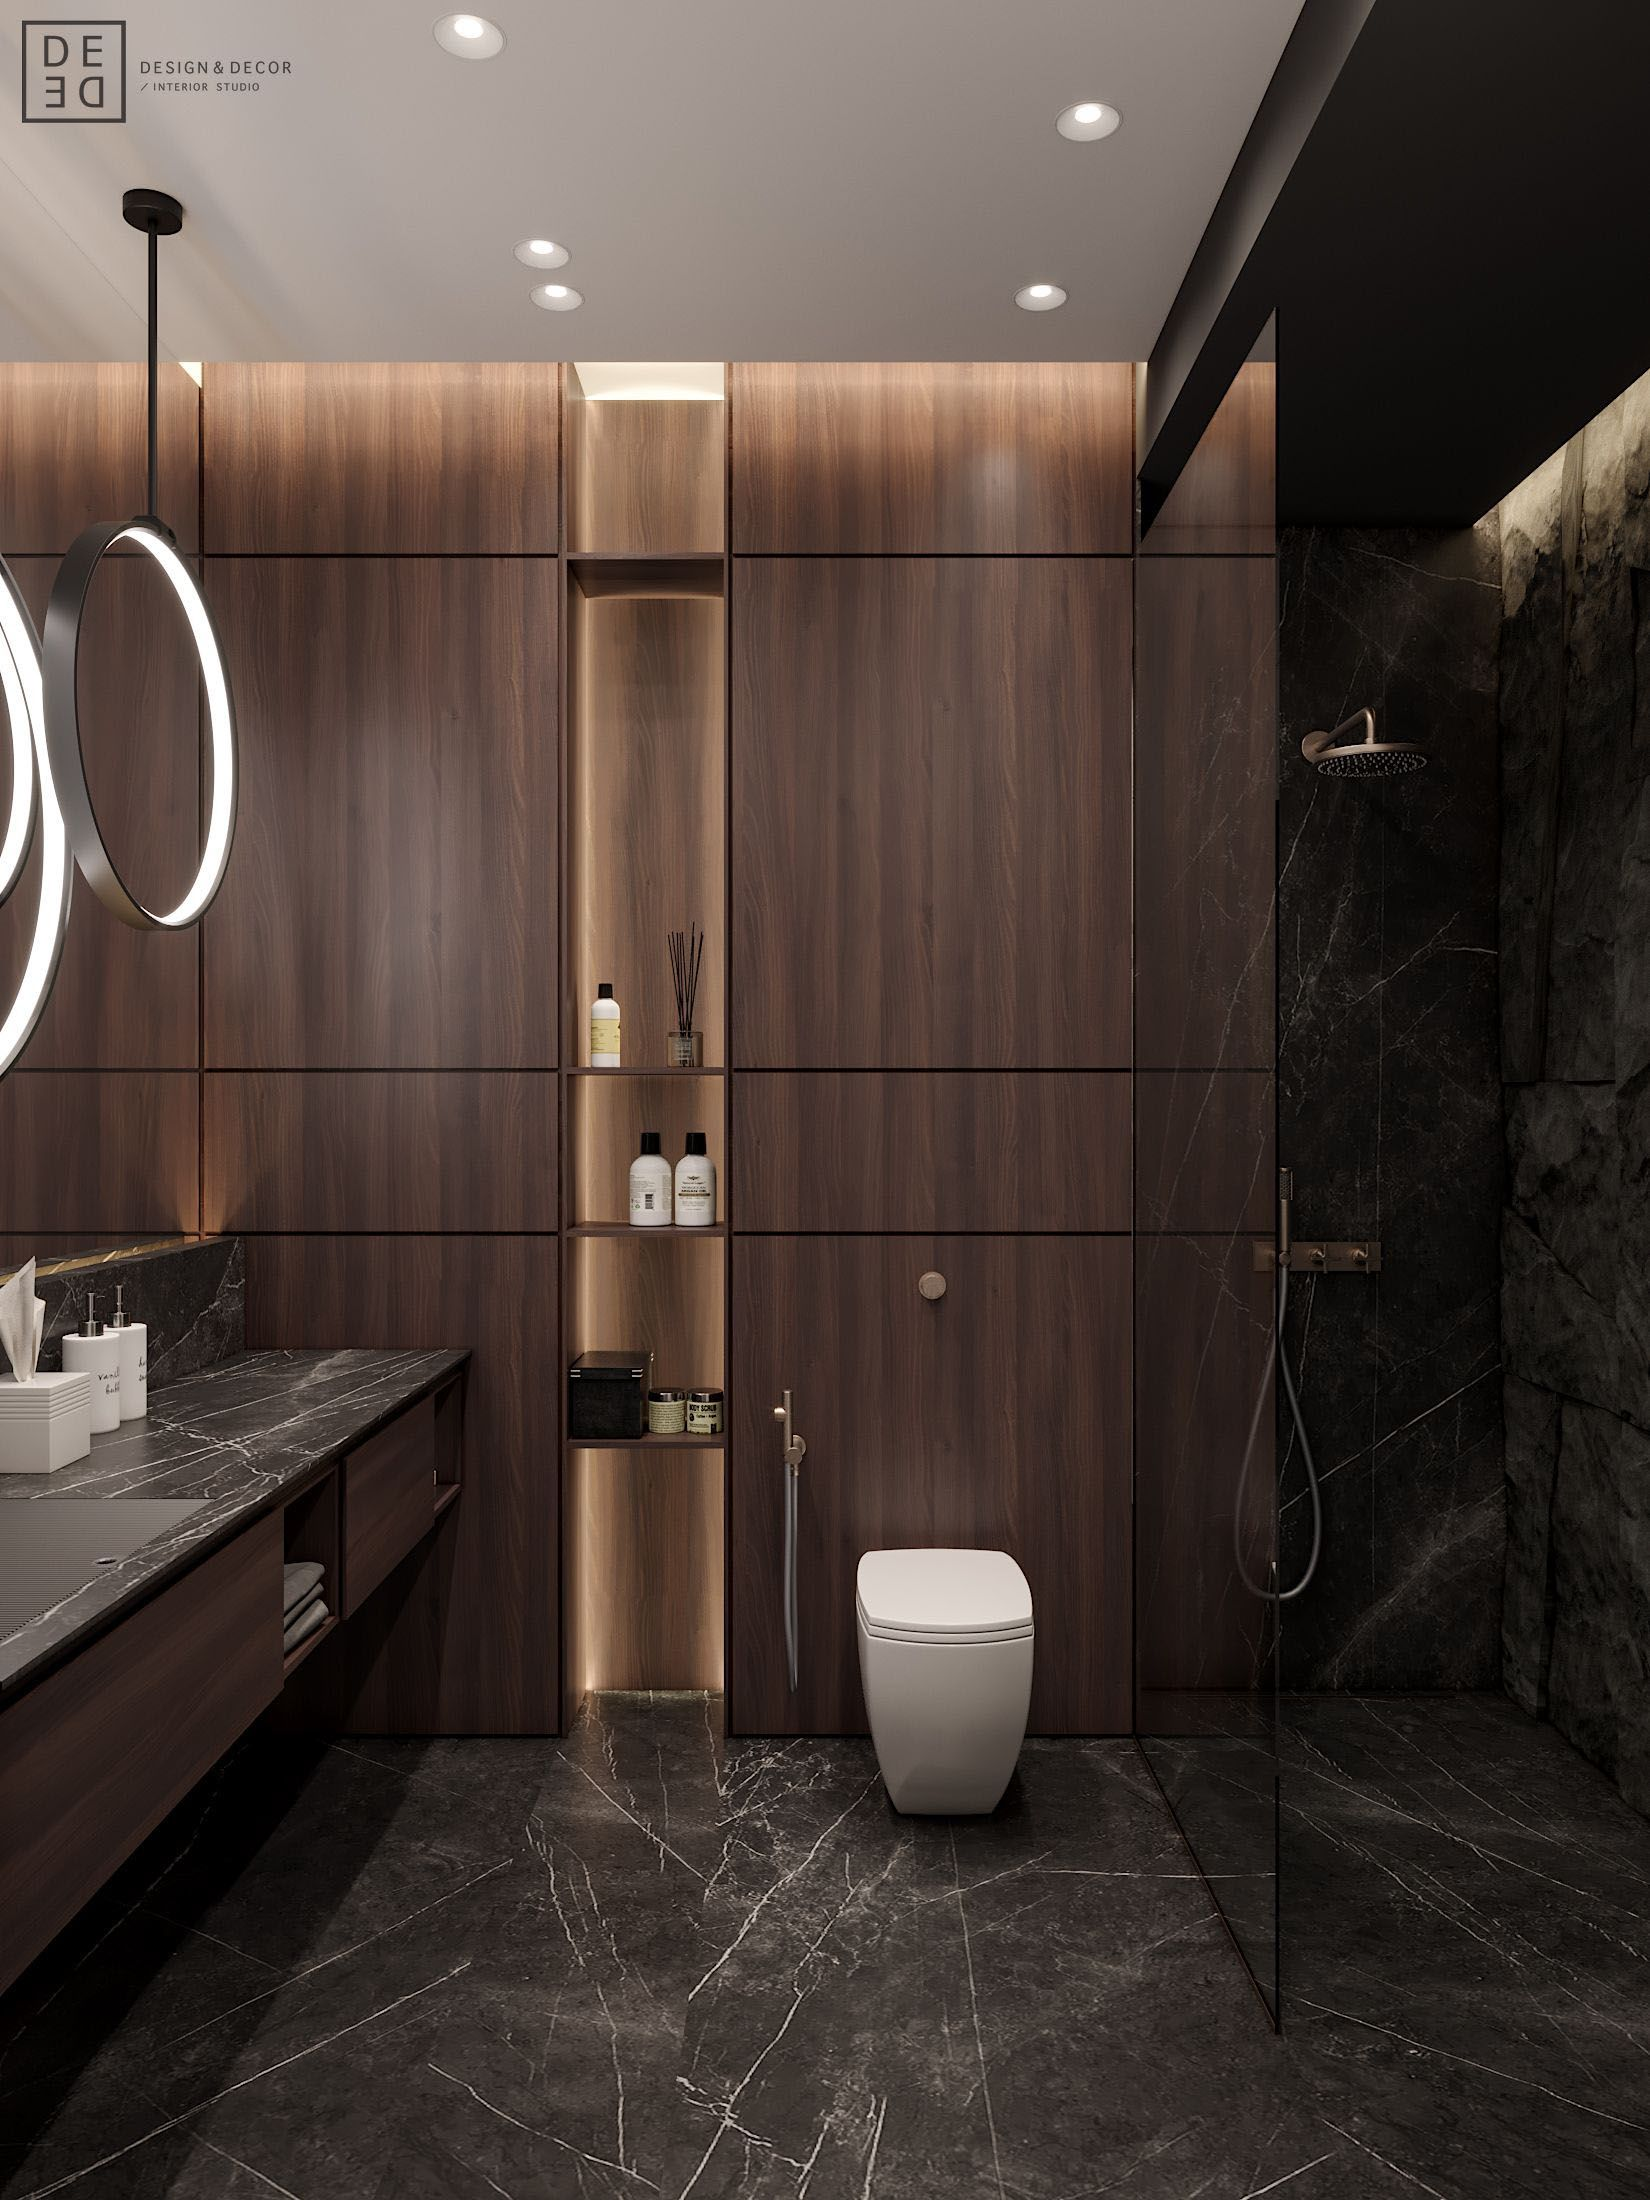 Cocoon Hotel Room Design Inspiration Hotel Projects Hotel Bathroom Design Renovations With Images Glamorous Bathroom Glamorous Bathroom Decor Bathroom Decor Luxury